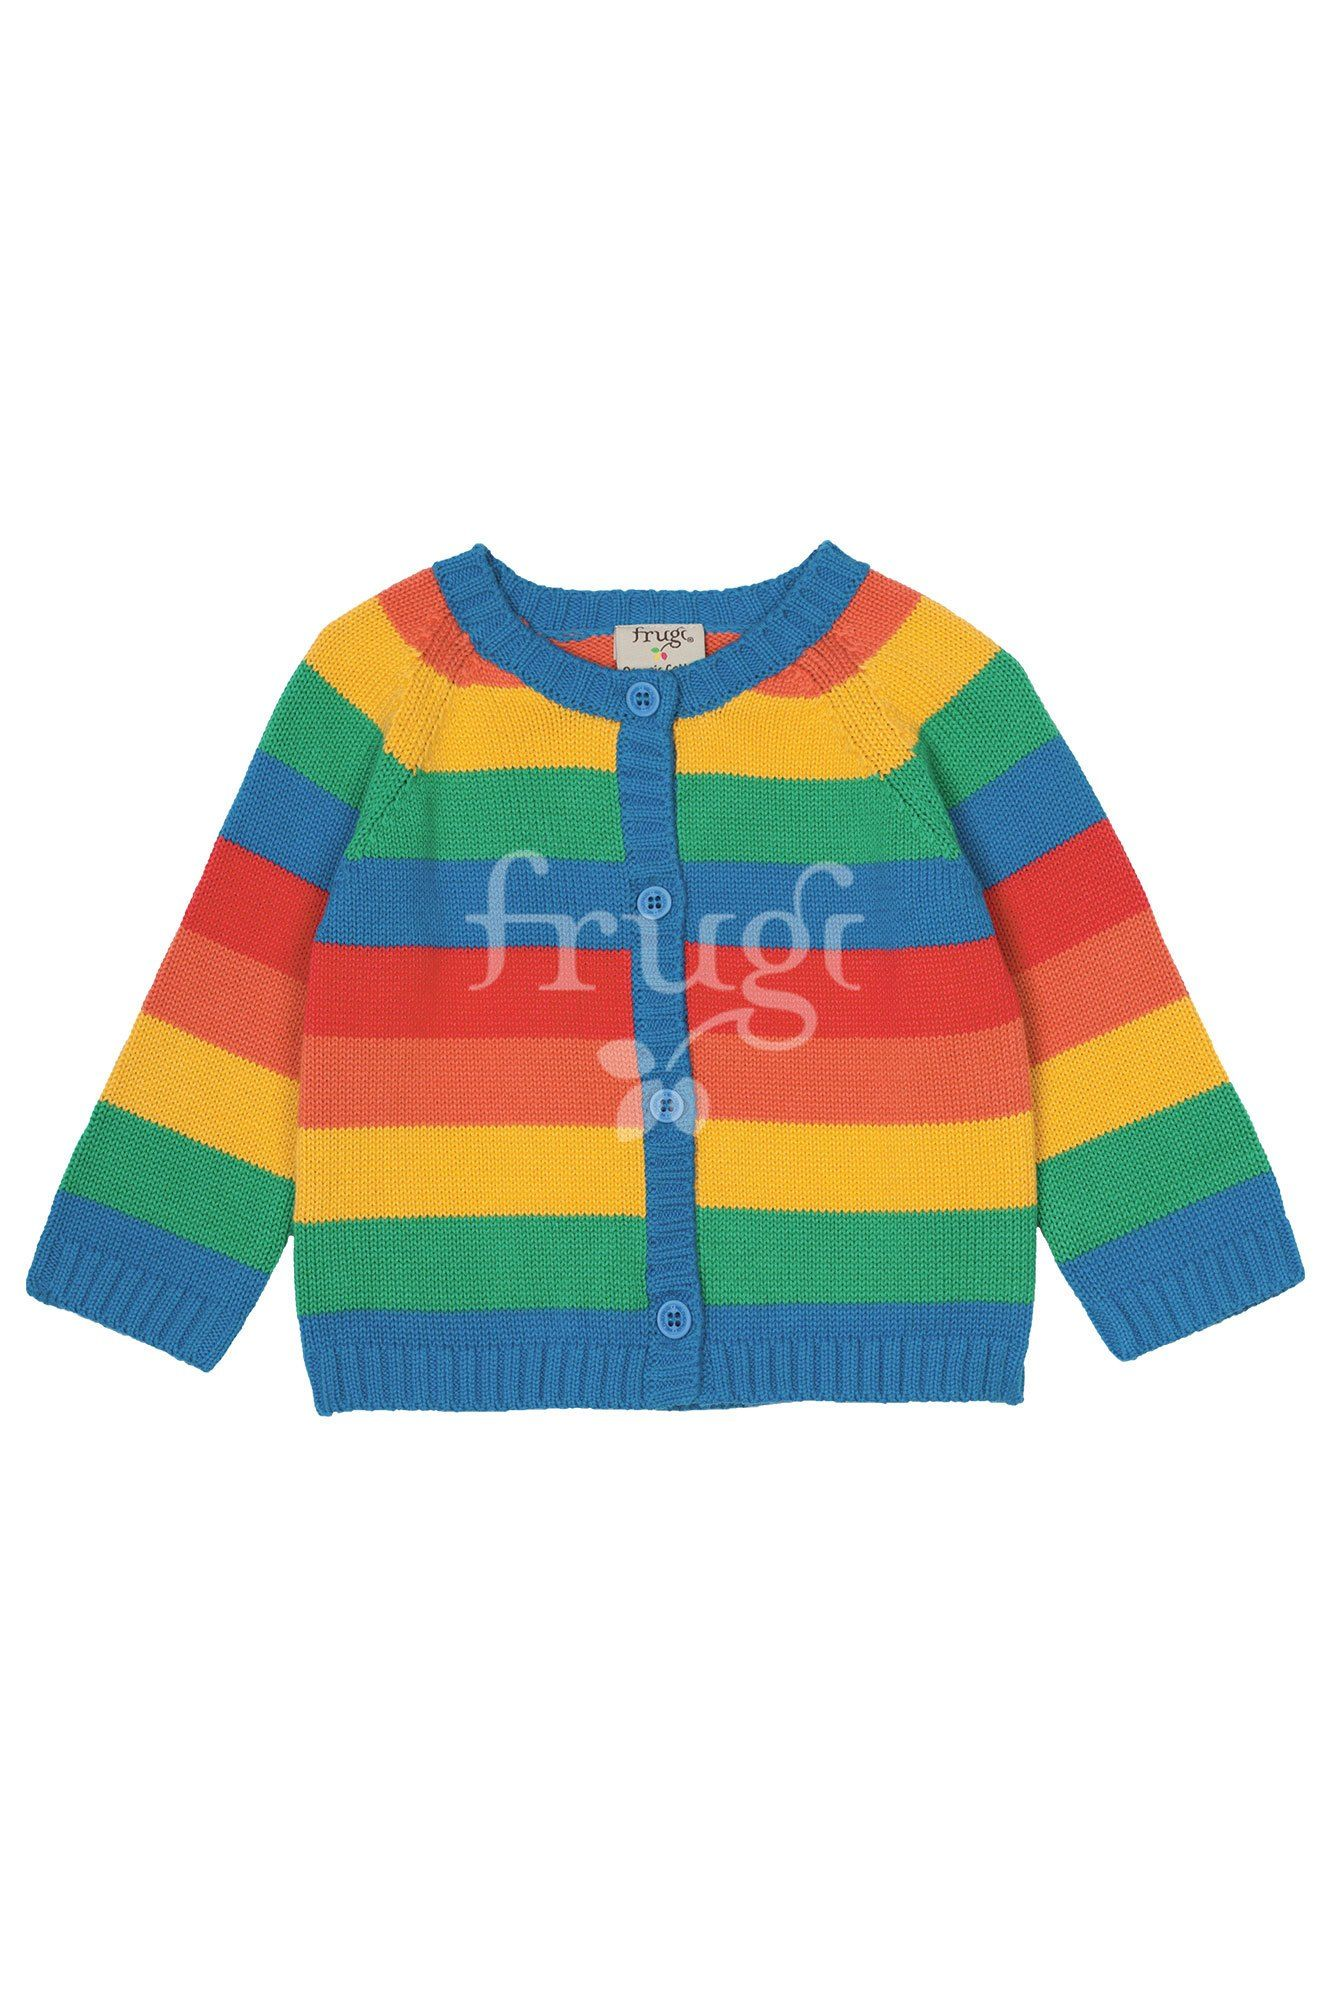 This fun rainbow stripe knitted cardigan is made from organic cotton ... b492caef0a8e